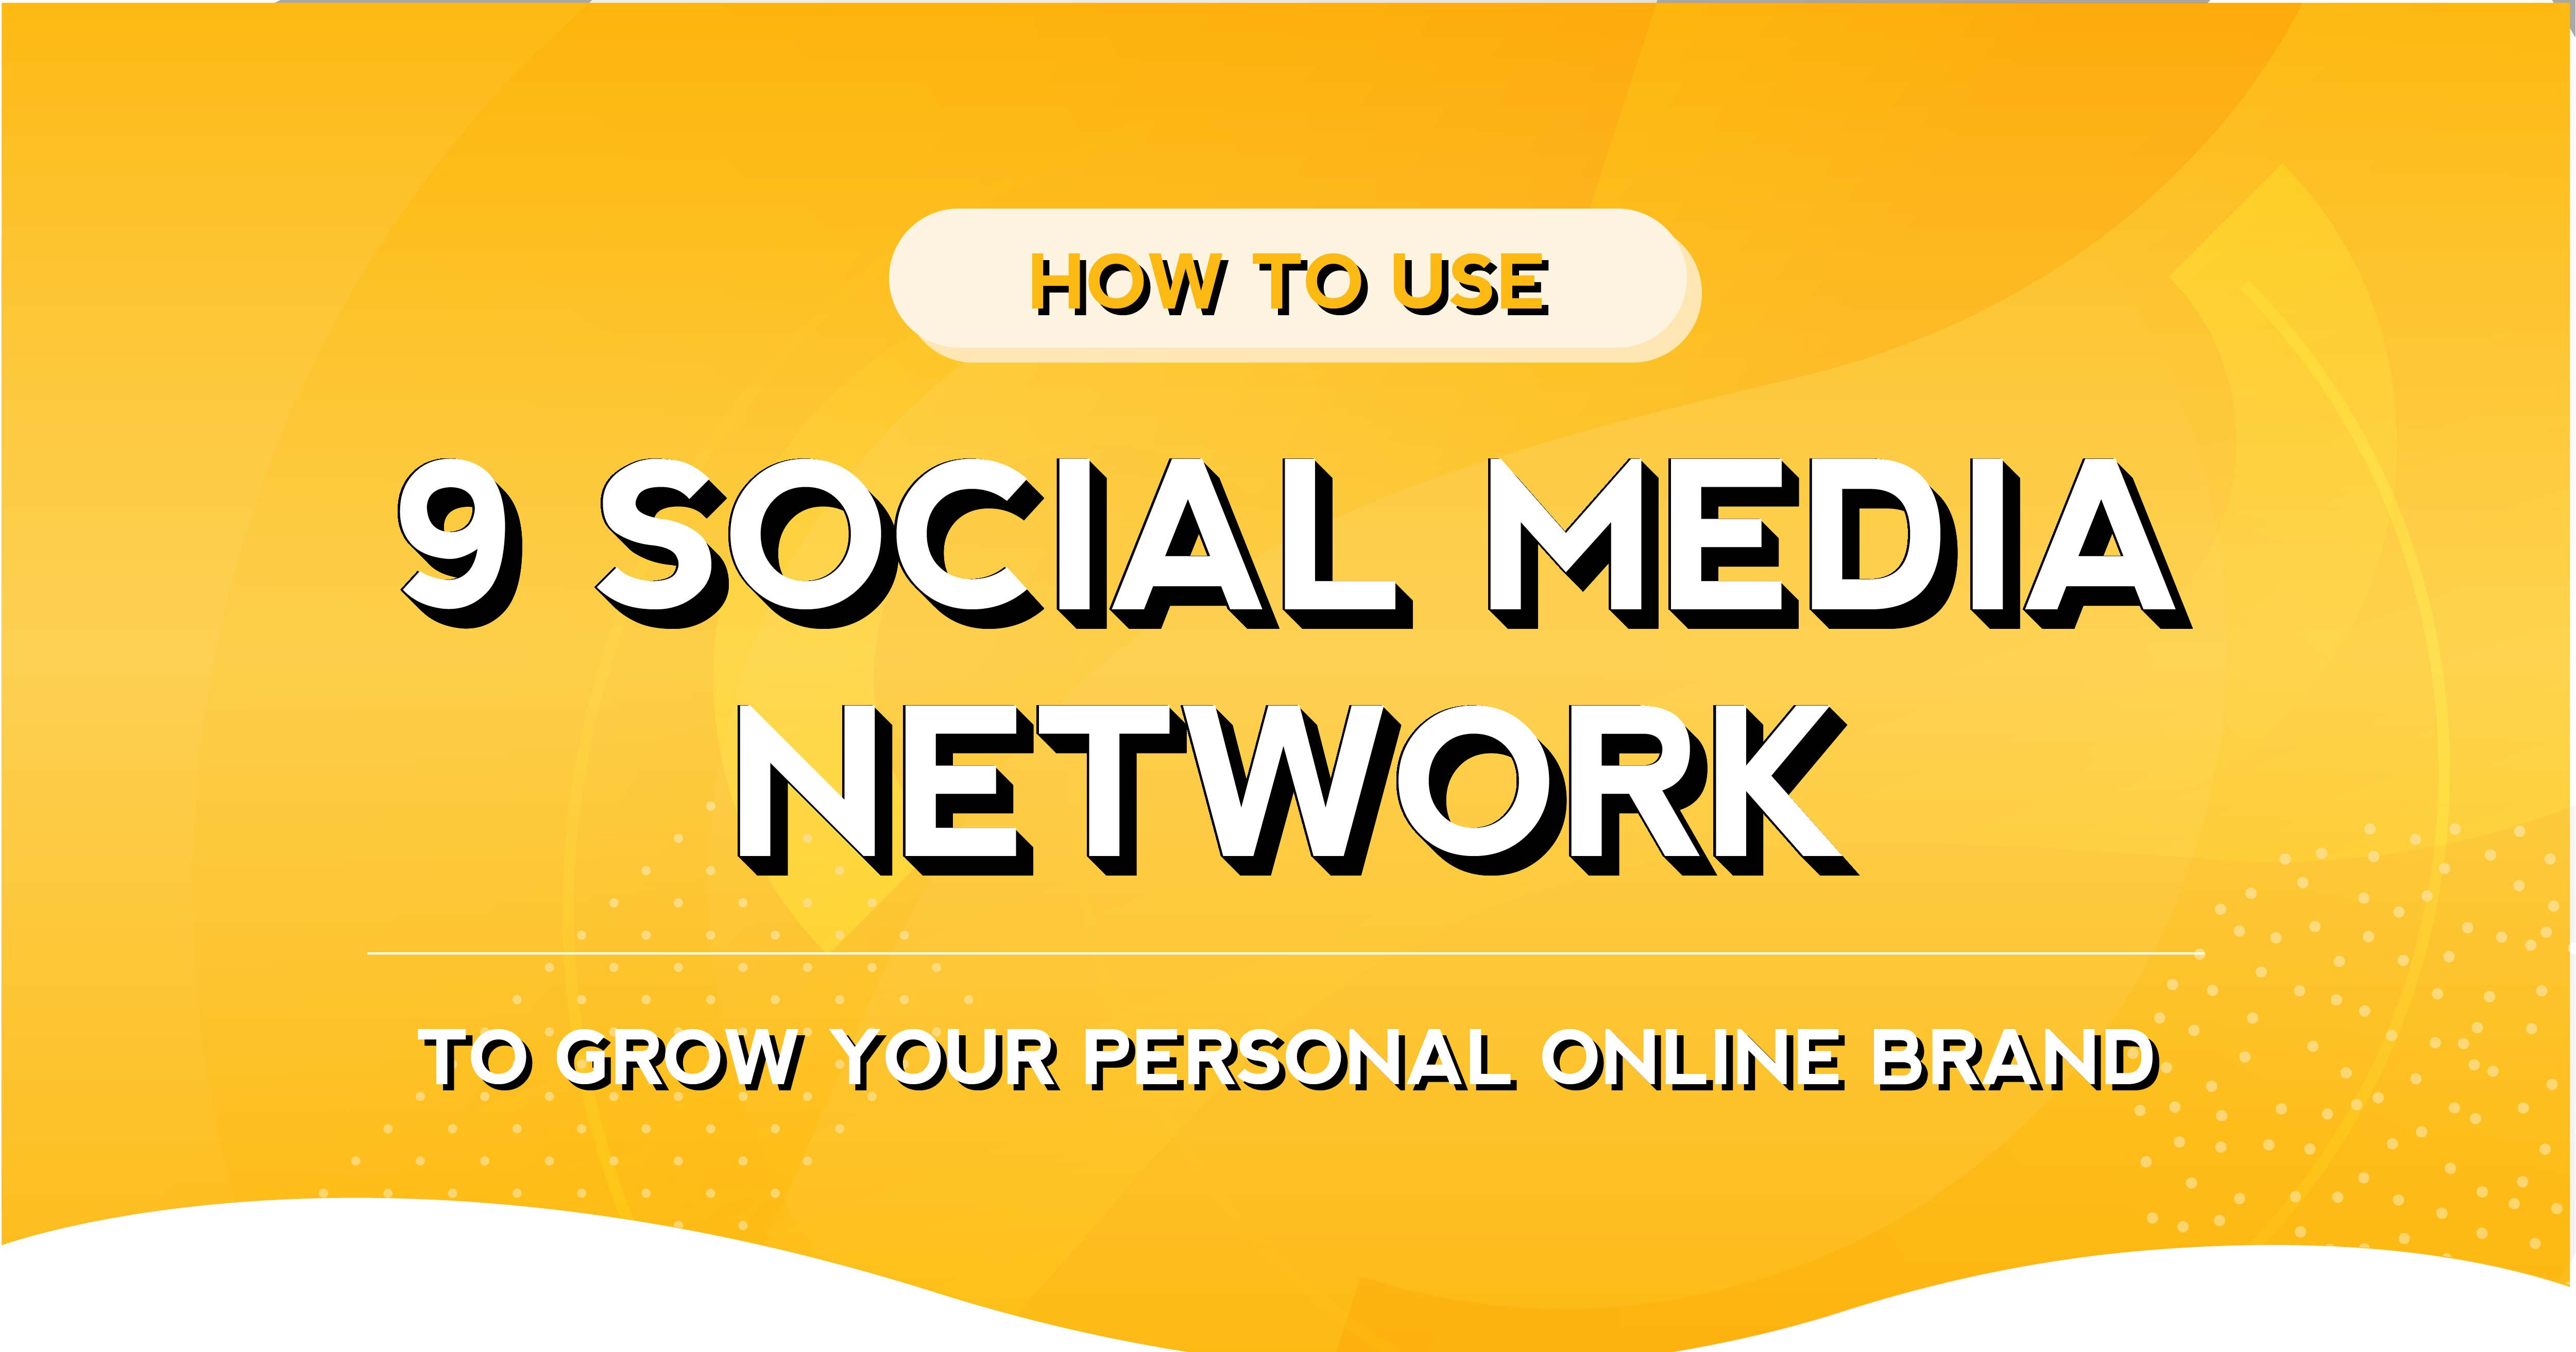 9 Social Media Network to Grow Your Personal Online Brand